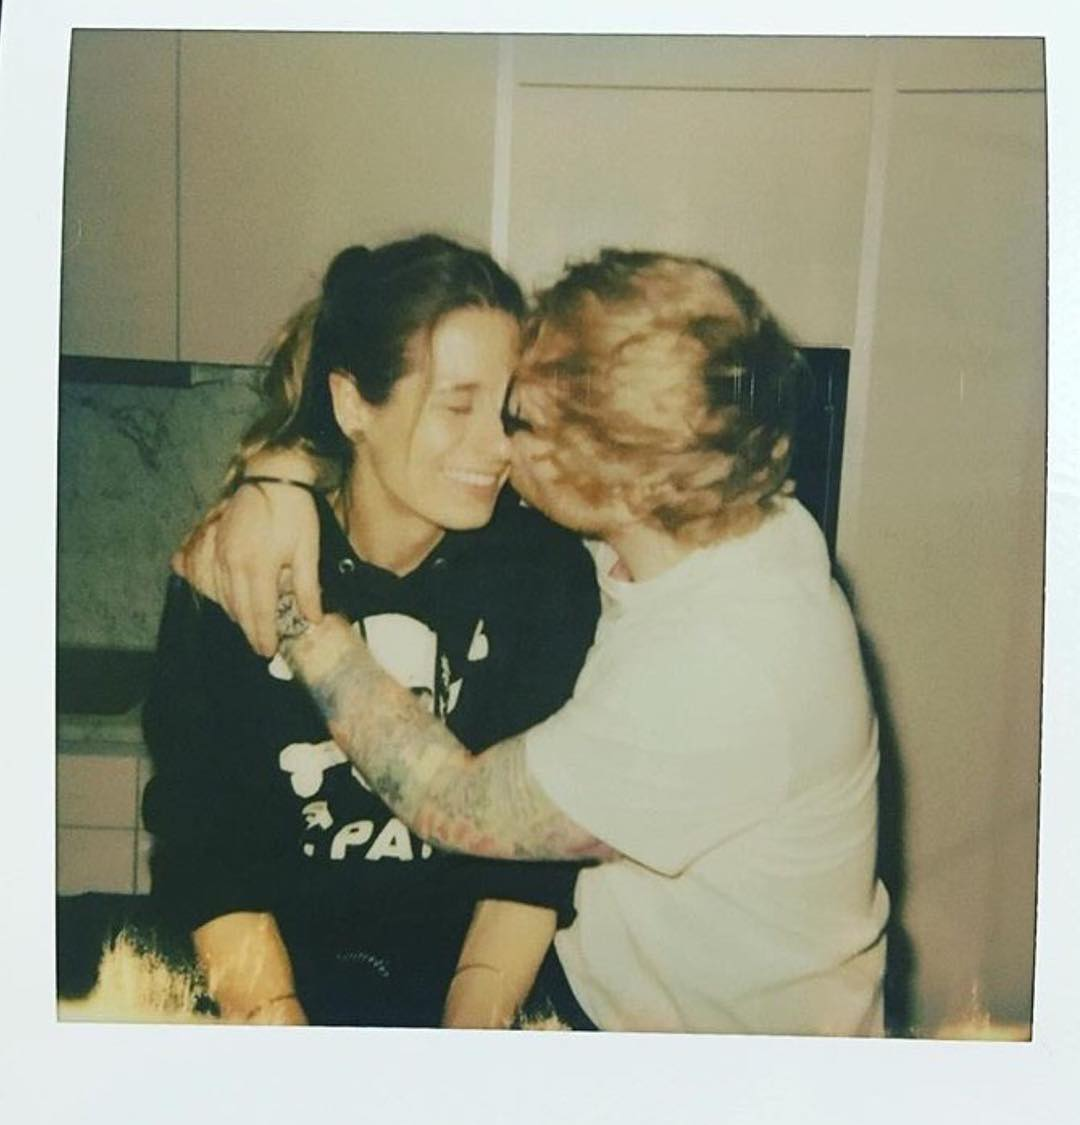 Ed Sheeran Finally Confirmed His Marriage to Cherry Seaborn